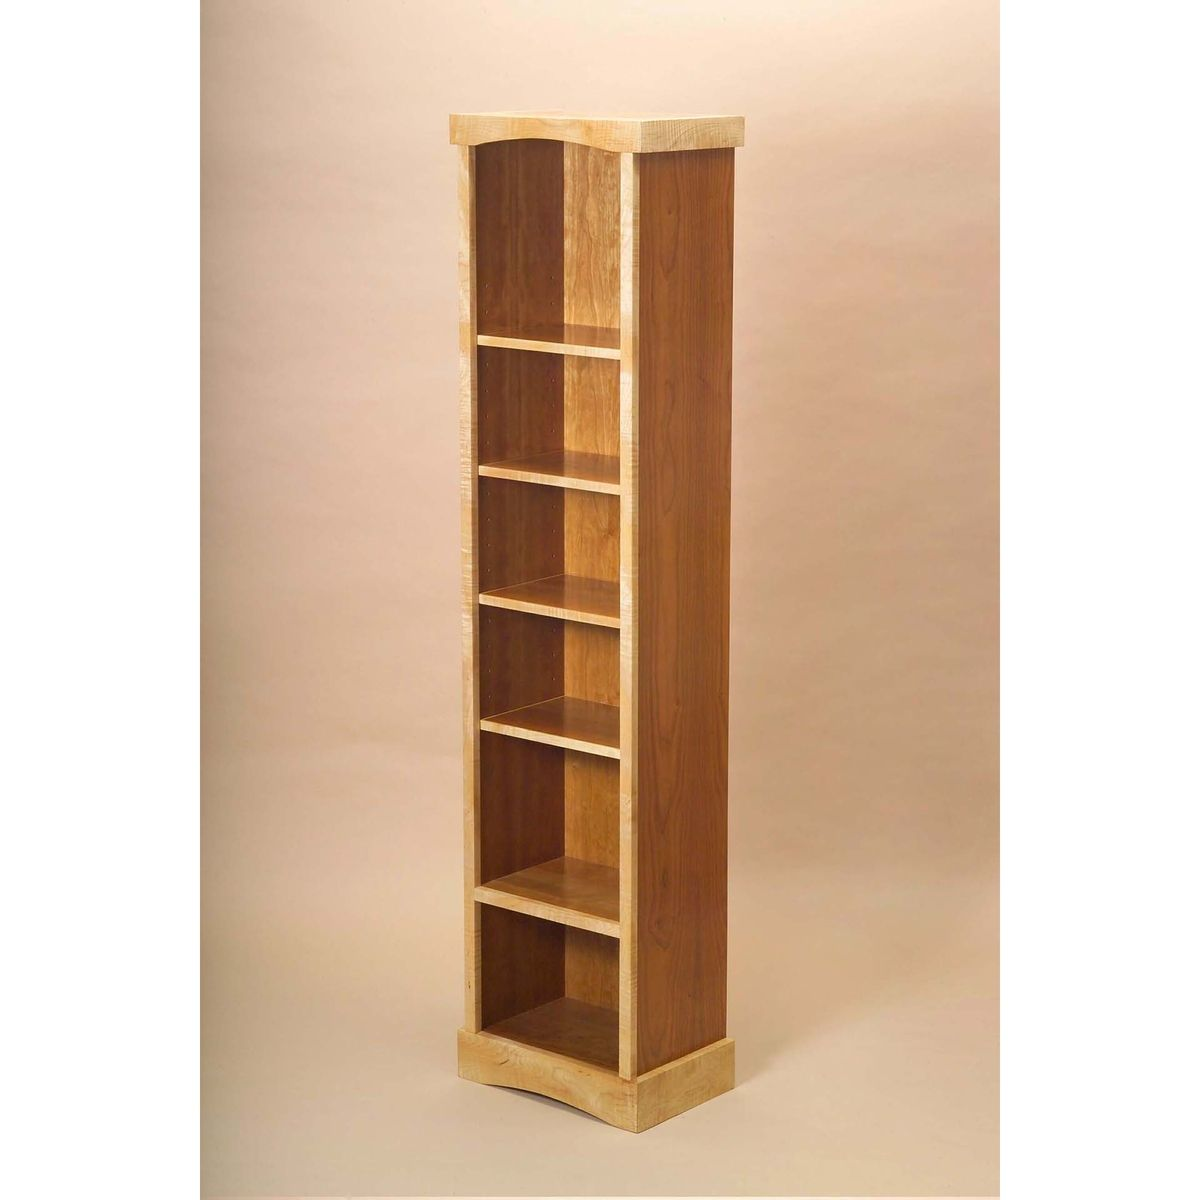 Handmade Tall Narrow Bookcase By Vb Woodworks